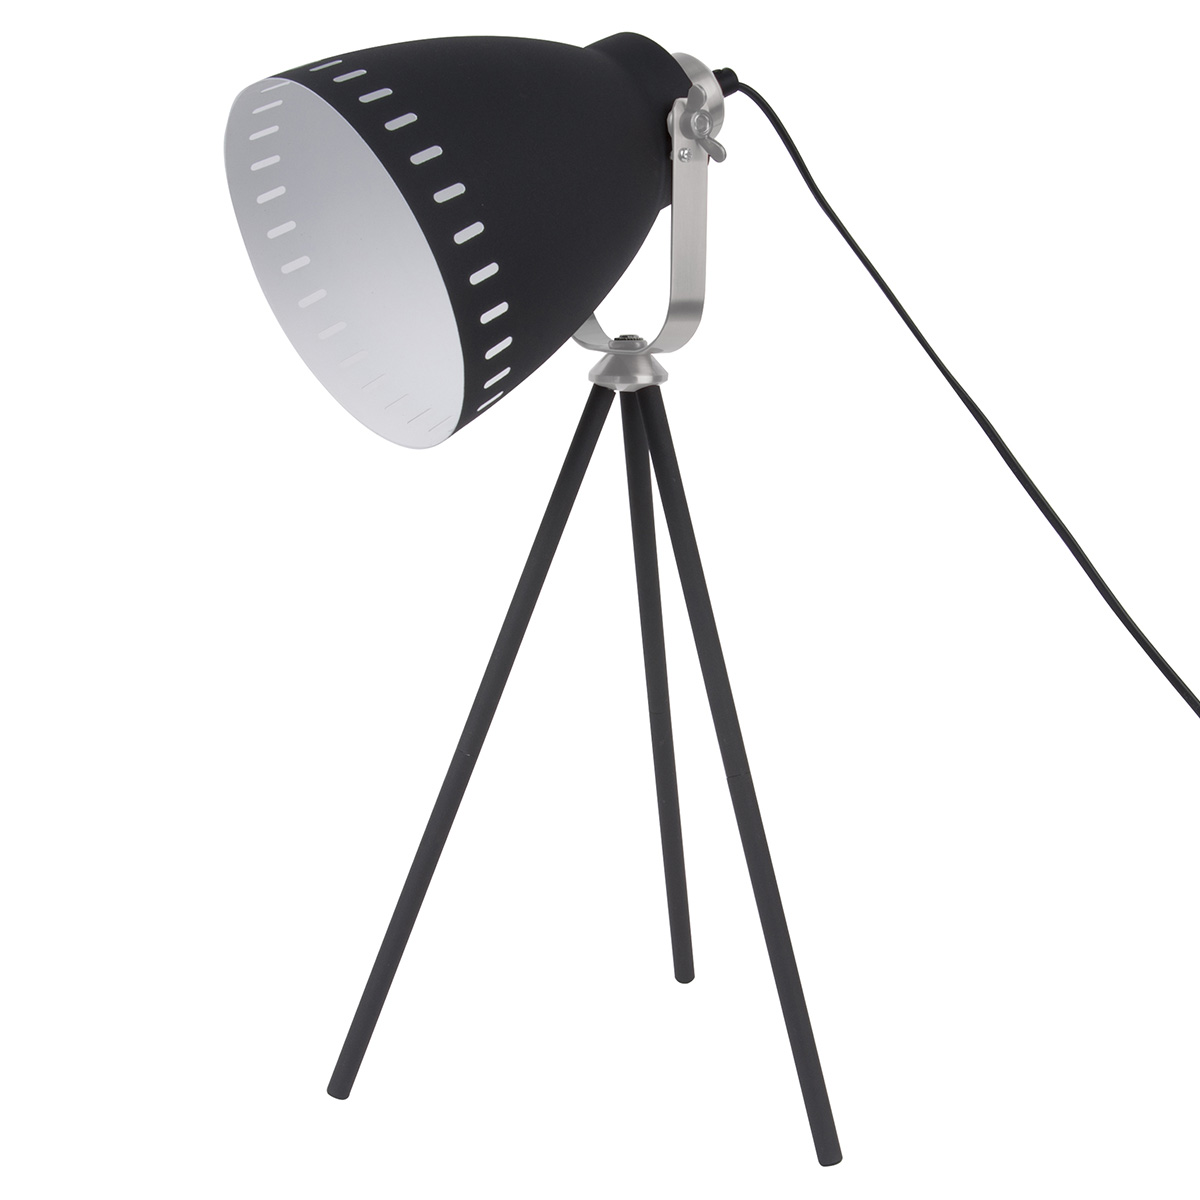 Image of   Leitmotiv bordlampe - Mingle LM1615 - Sort